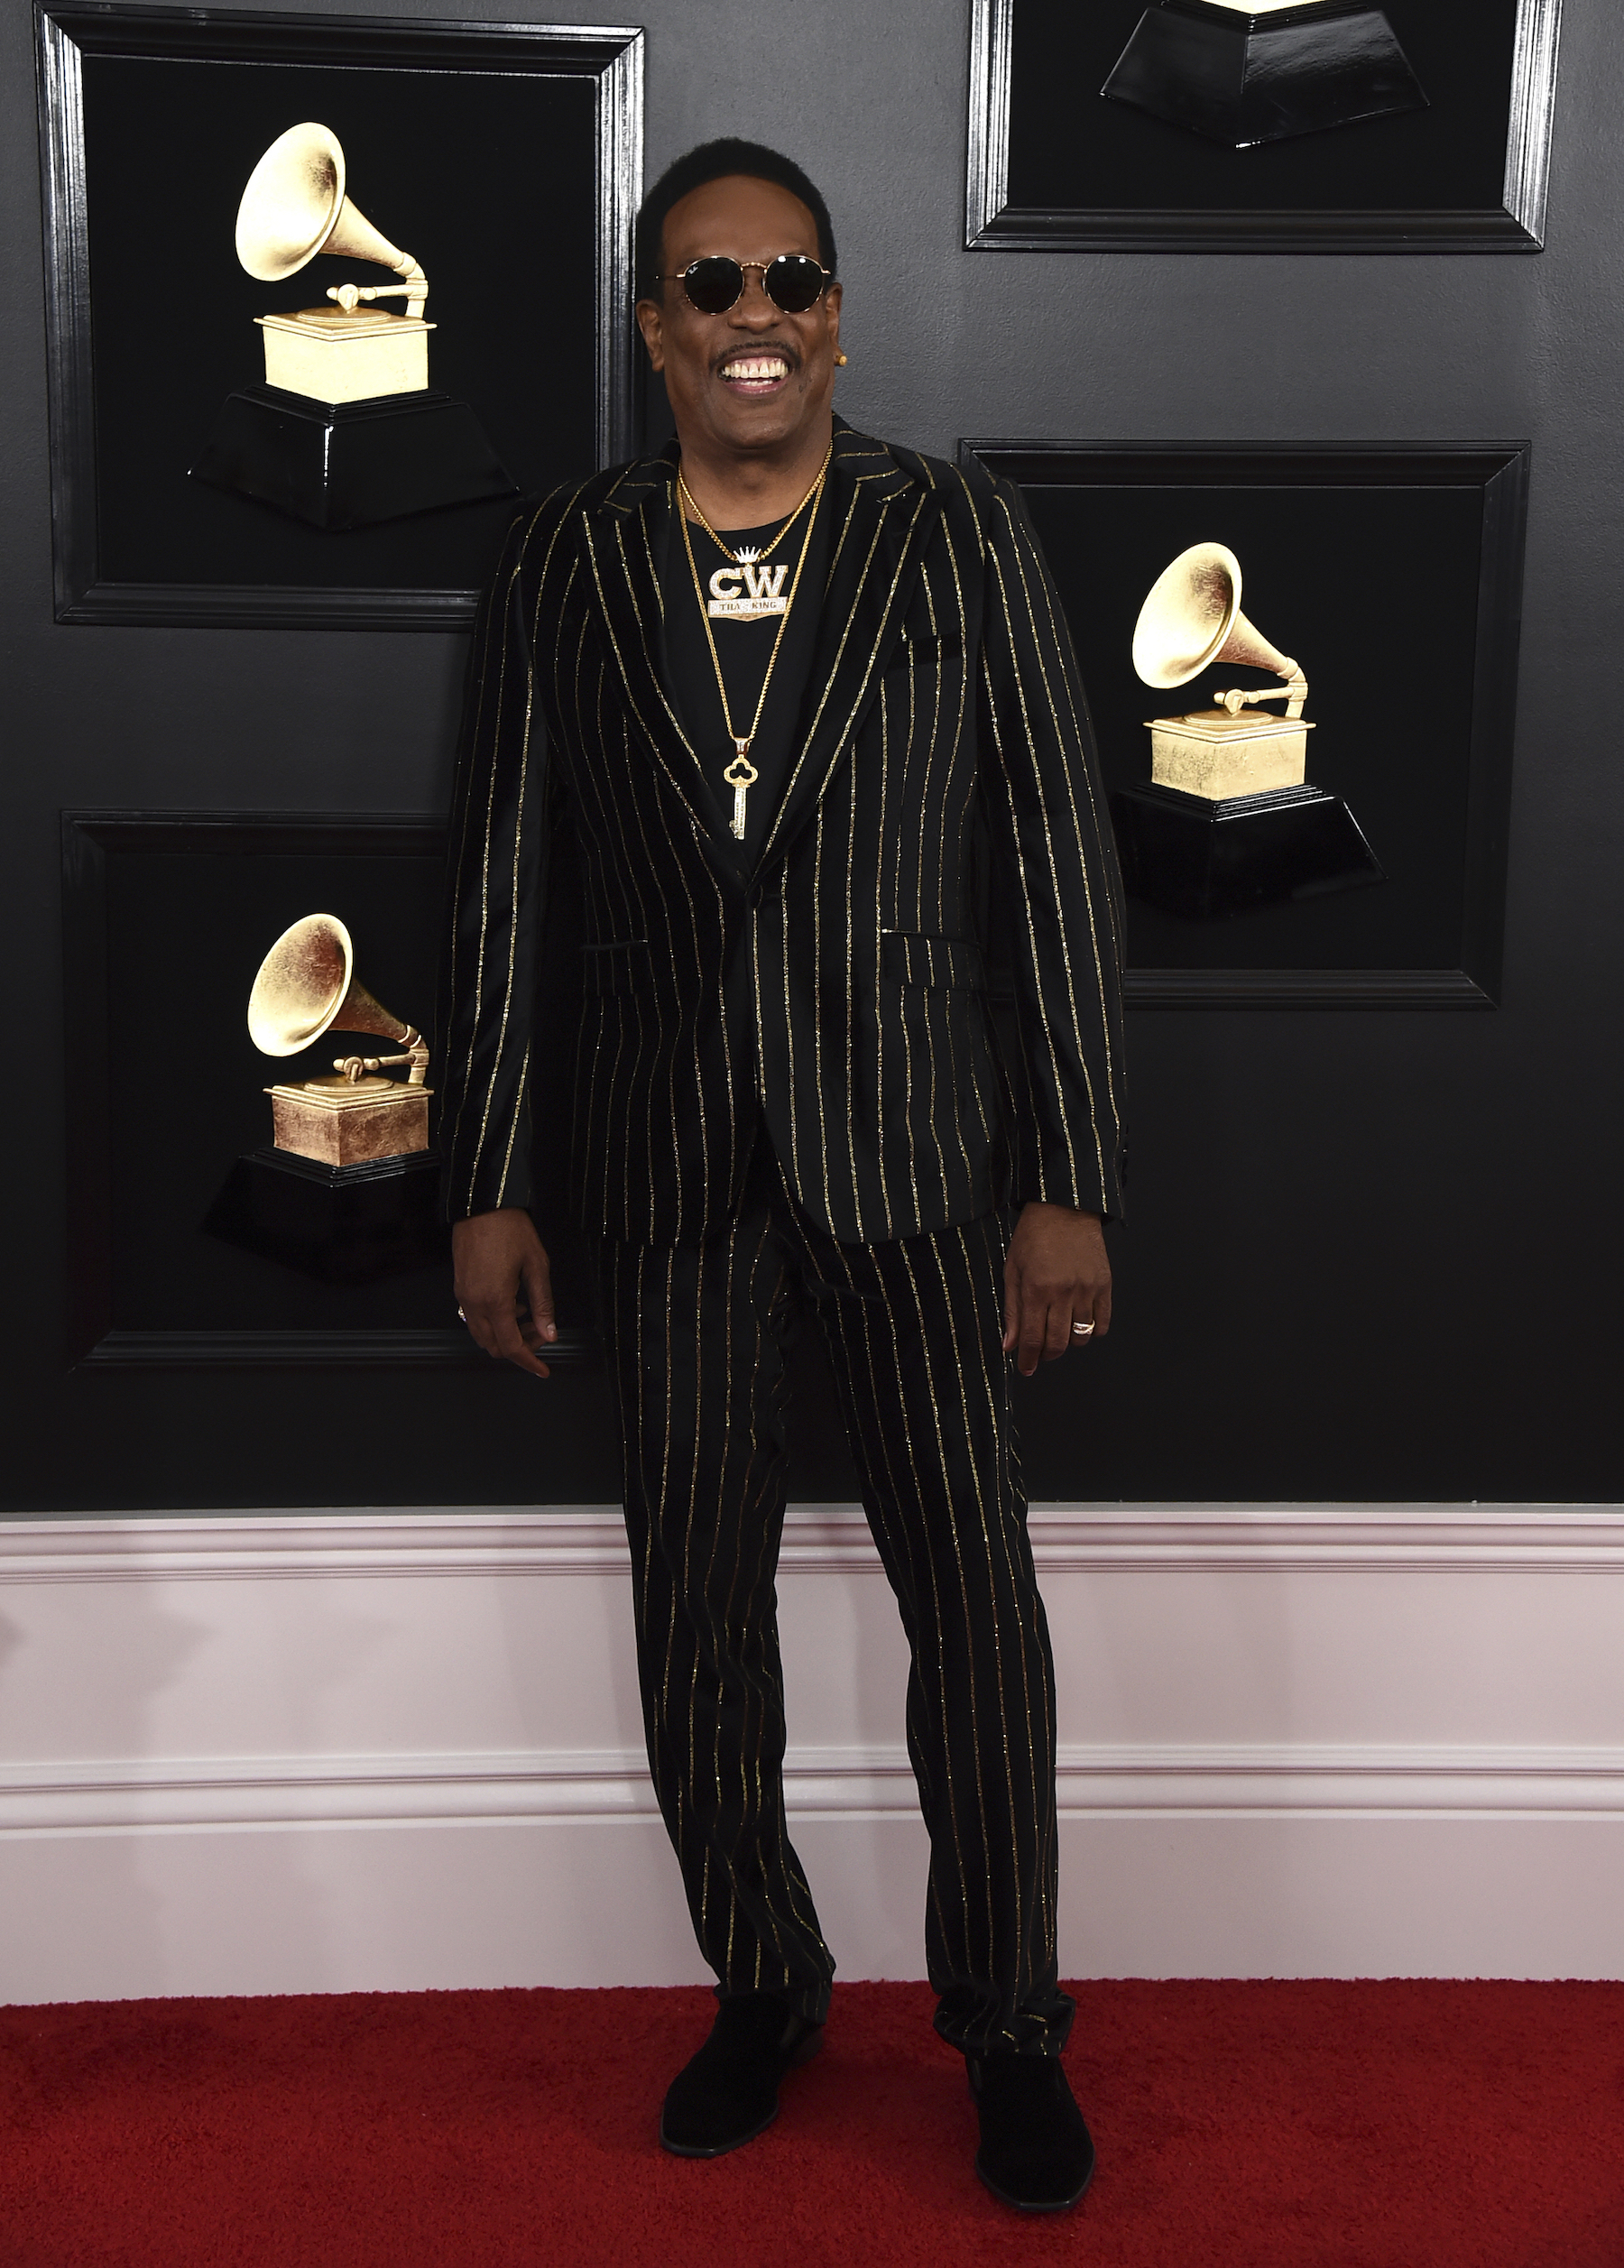 "<div class=""meta image-caption""><div class=""origin-logo origin-image ap""><span>AP</span></div><span class=""caption-text"">Charlie Wilson arrives at the 61st annual Grammy Awards at the Staples Center on Sunday, Feb. 10, 2019, in Los Angeles. (Jordan Strauss/Invision/AP)</span></div>"